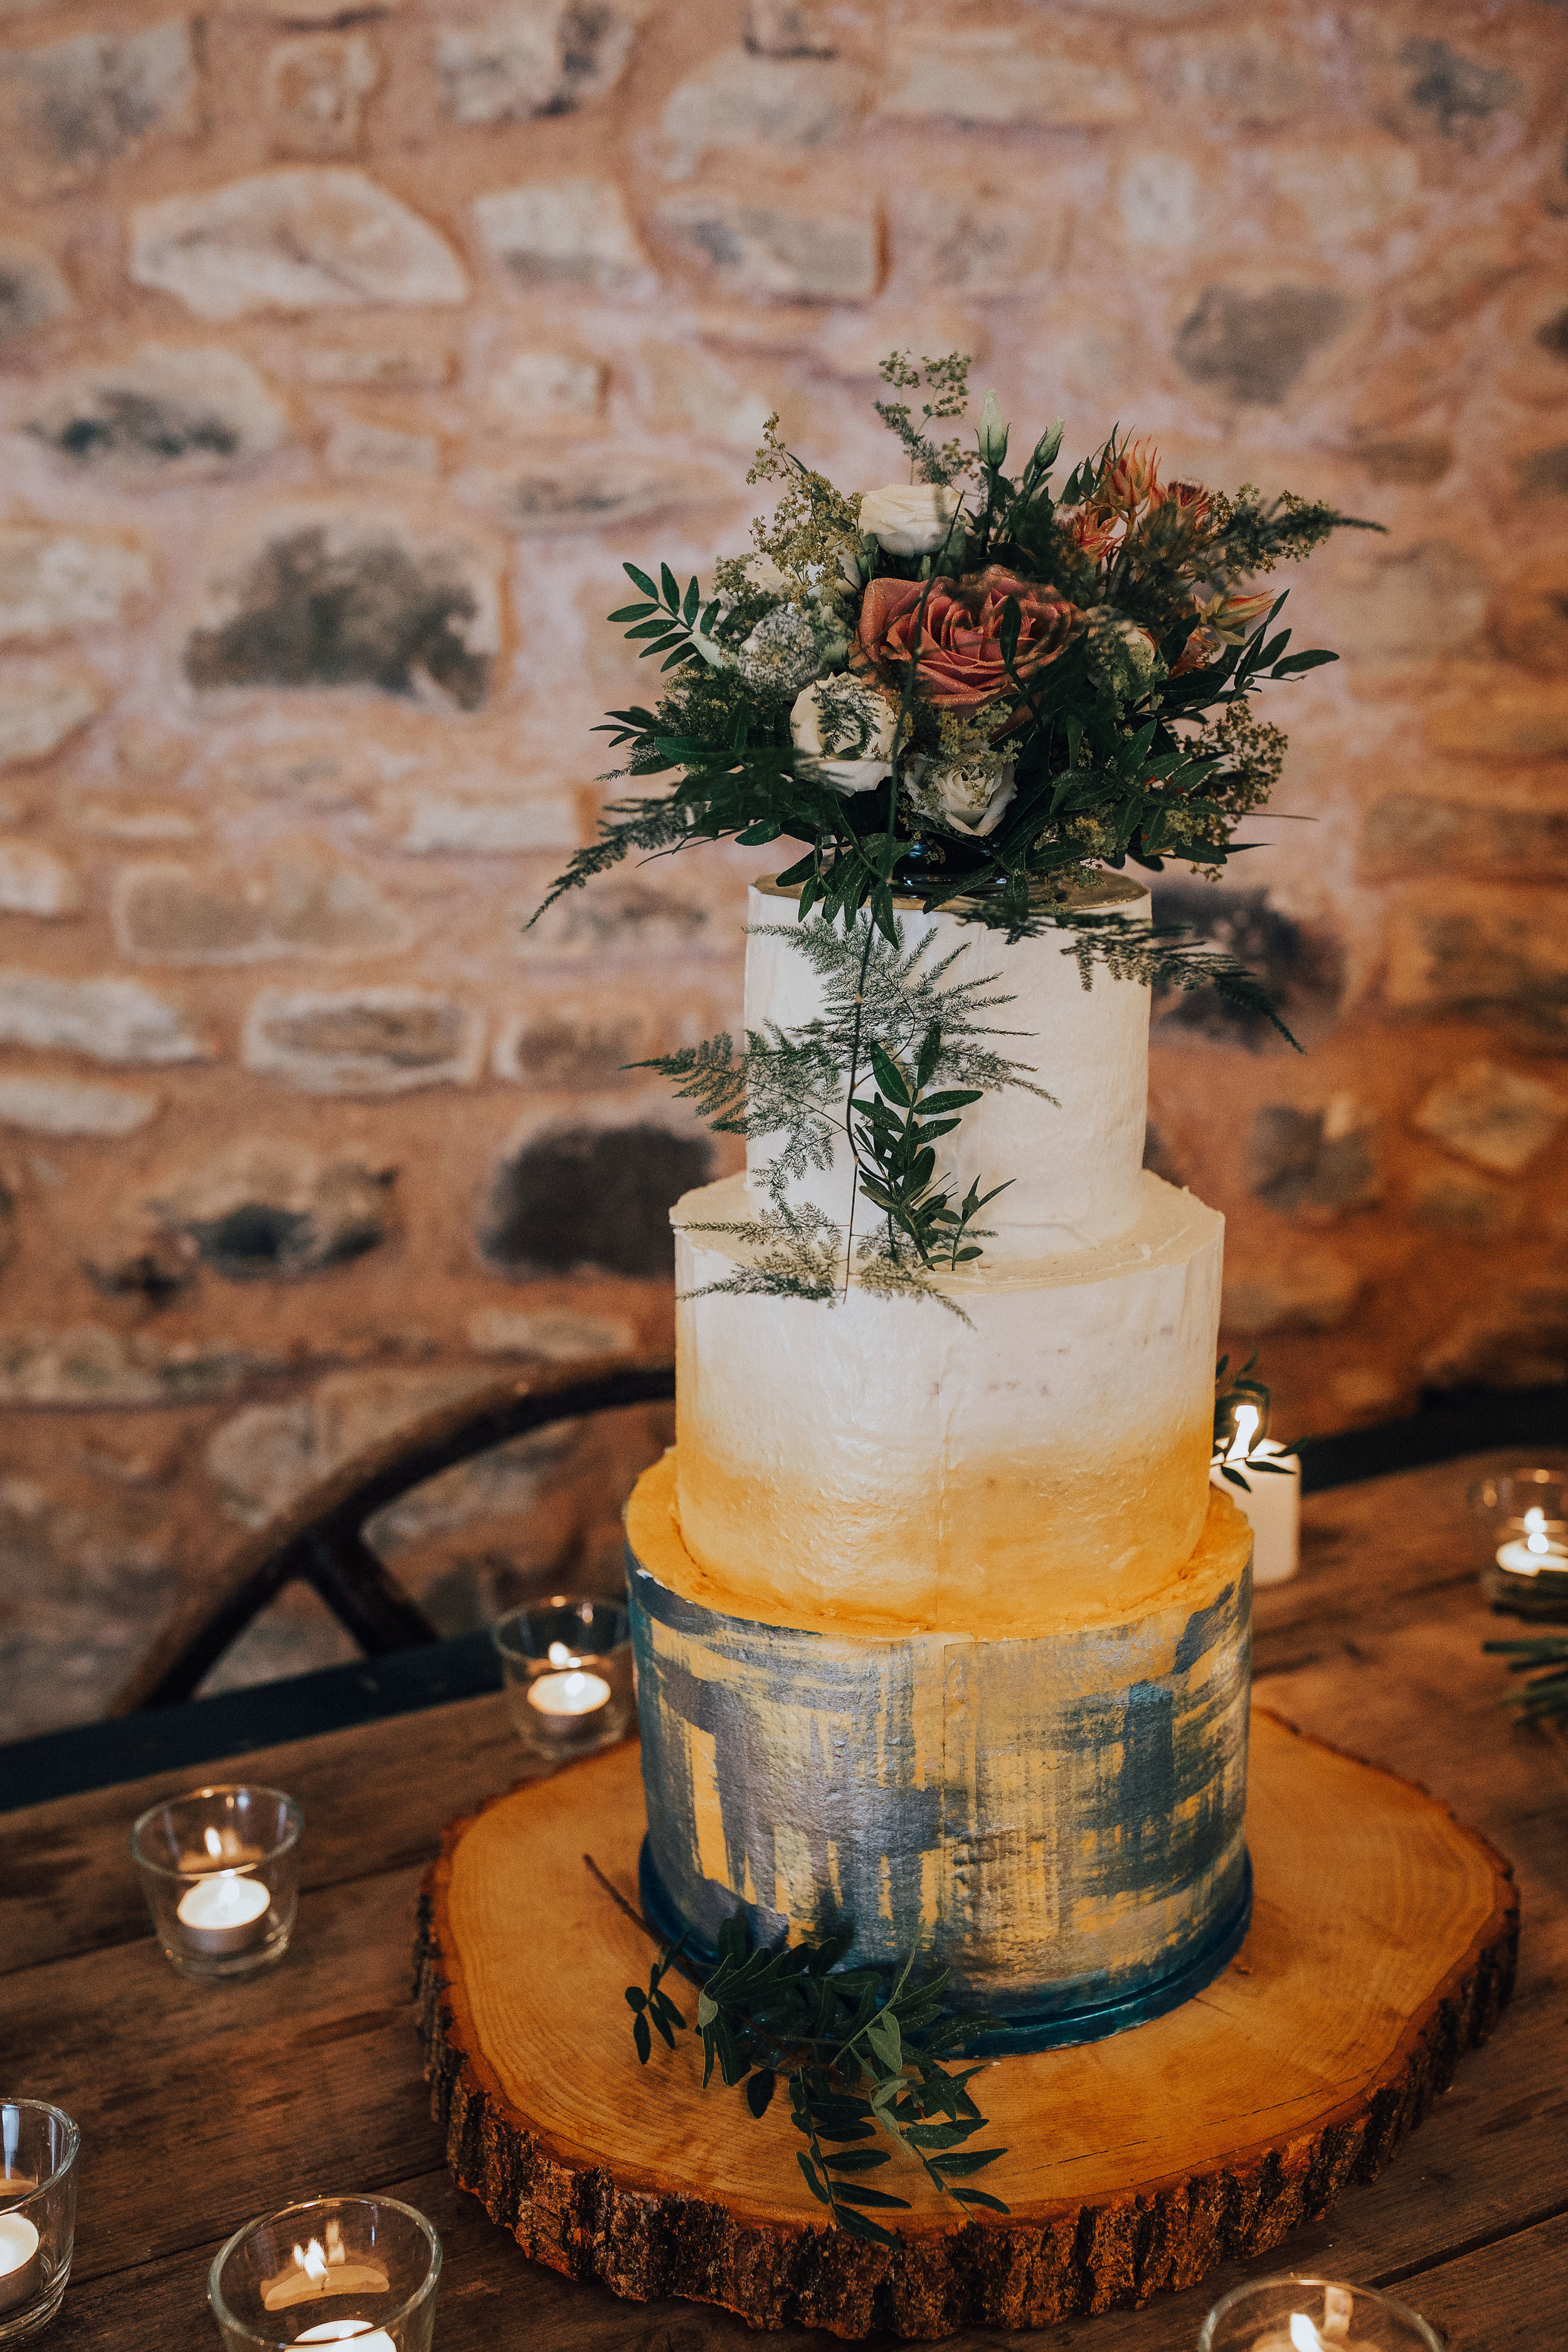 PJ_PHILLIPS_PHOTOGRAPHY_EDINBURGH_WEDDERBURN_BARNS_WEDDING_EDINBURGH_WEDDING_PHOTOGRAPHER_128.jpg